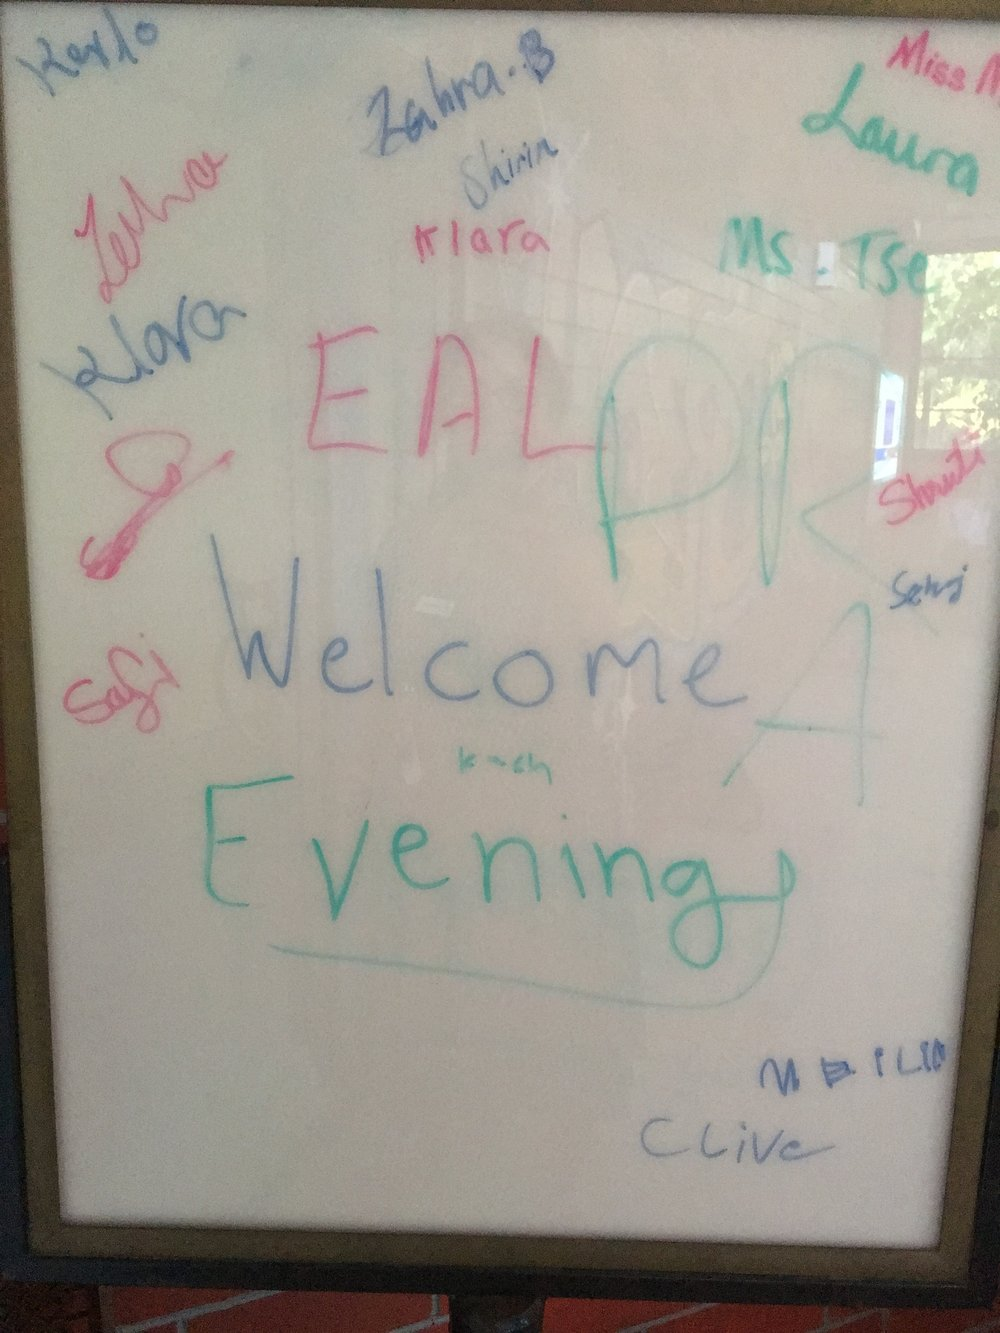 EAL Welcome Evening